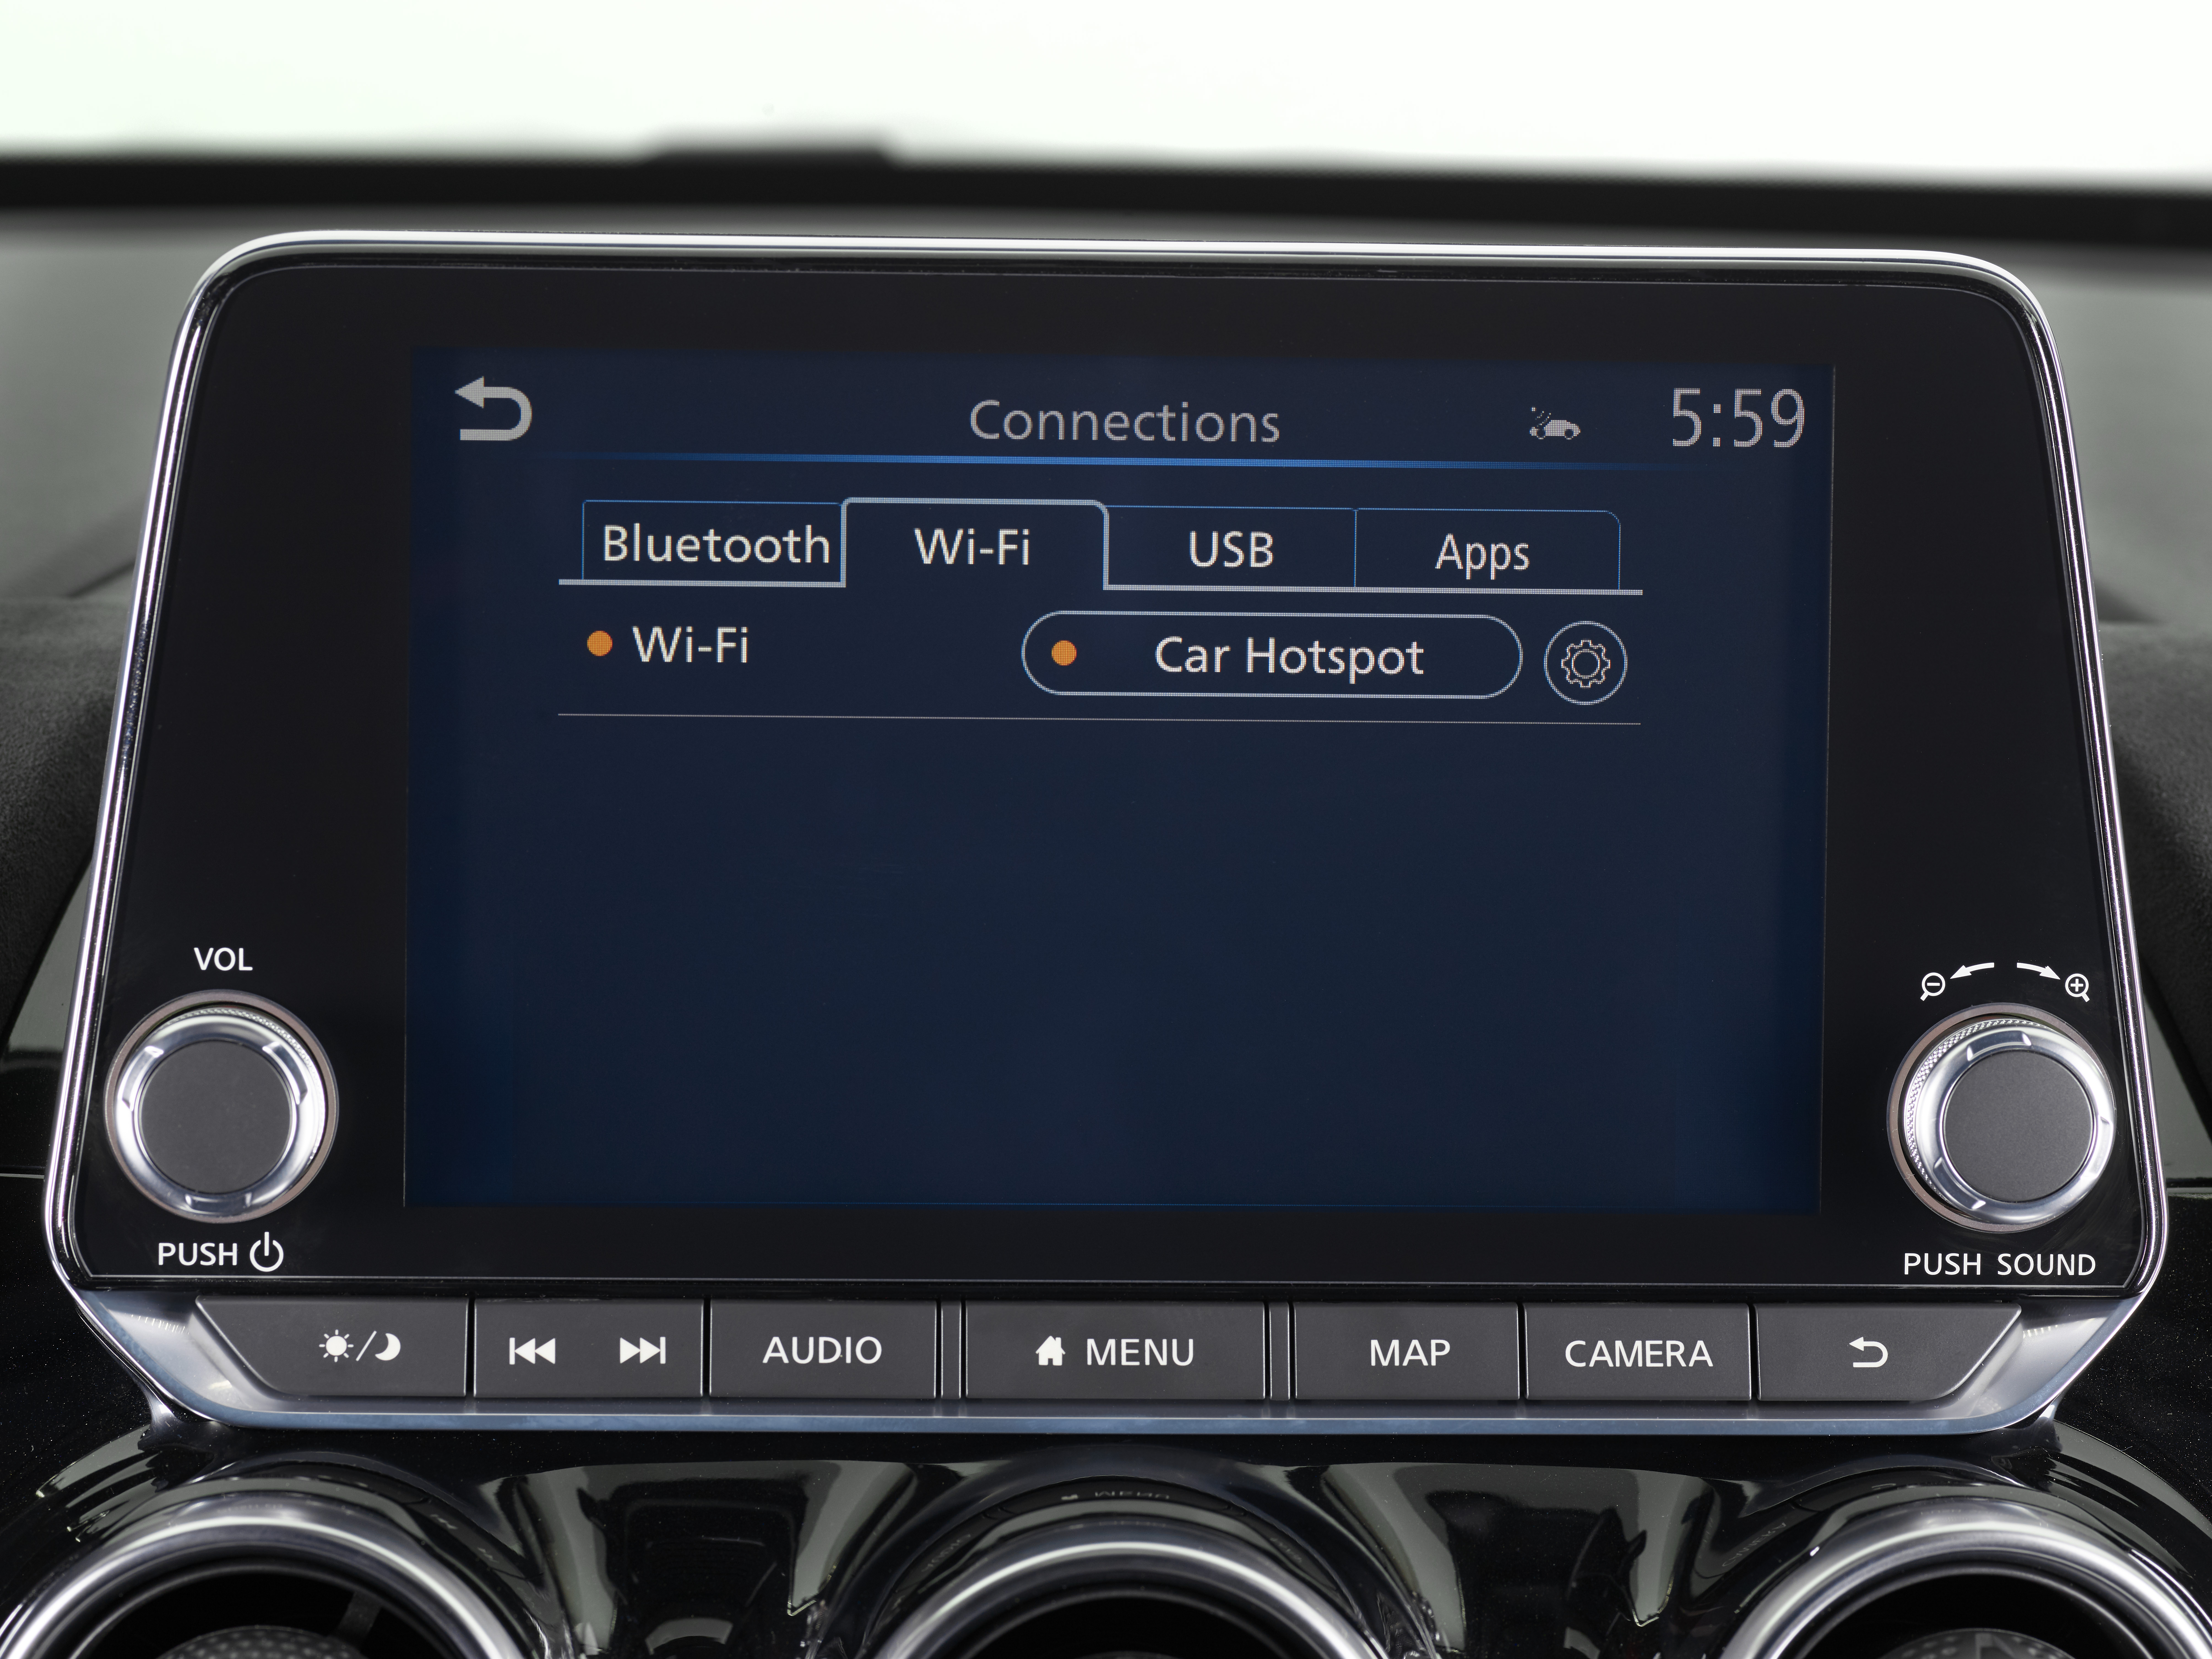 A new infotainment screen heads up the Juke's tech offering